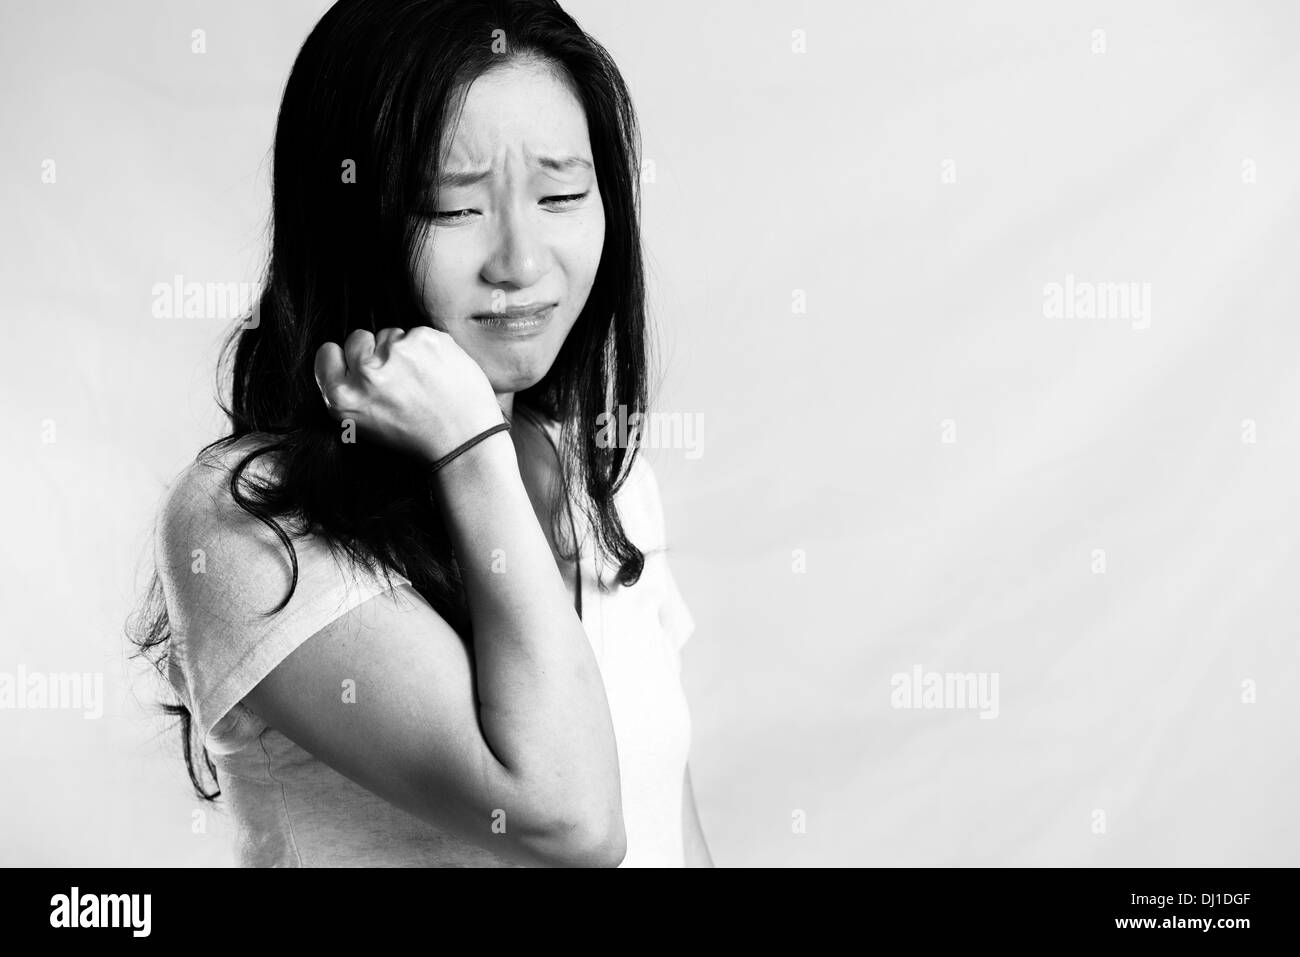 Portrait of young woman crying while pulling her hair, black and white style - Stock Image